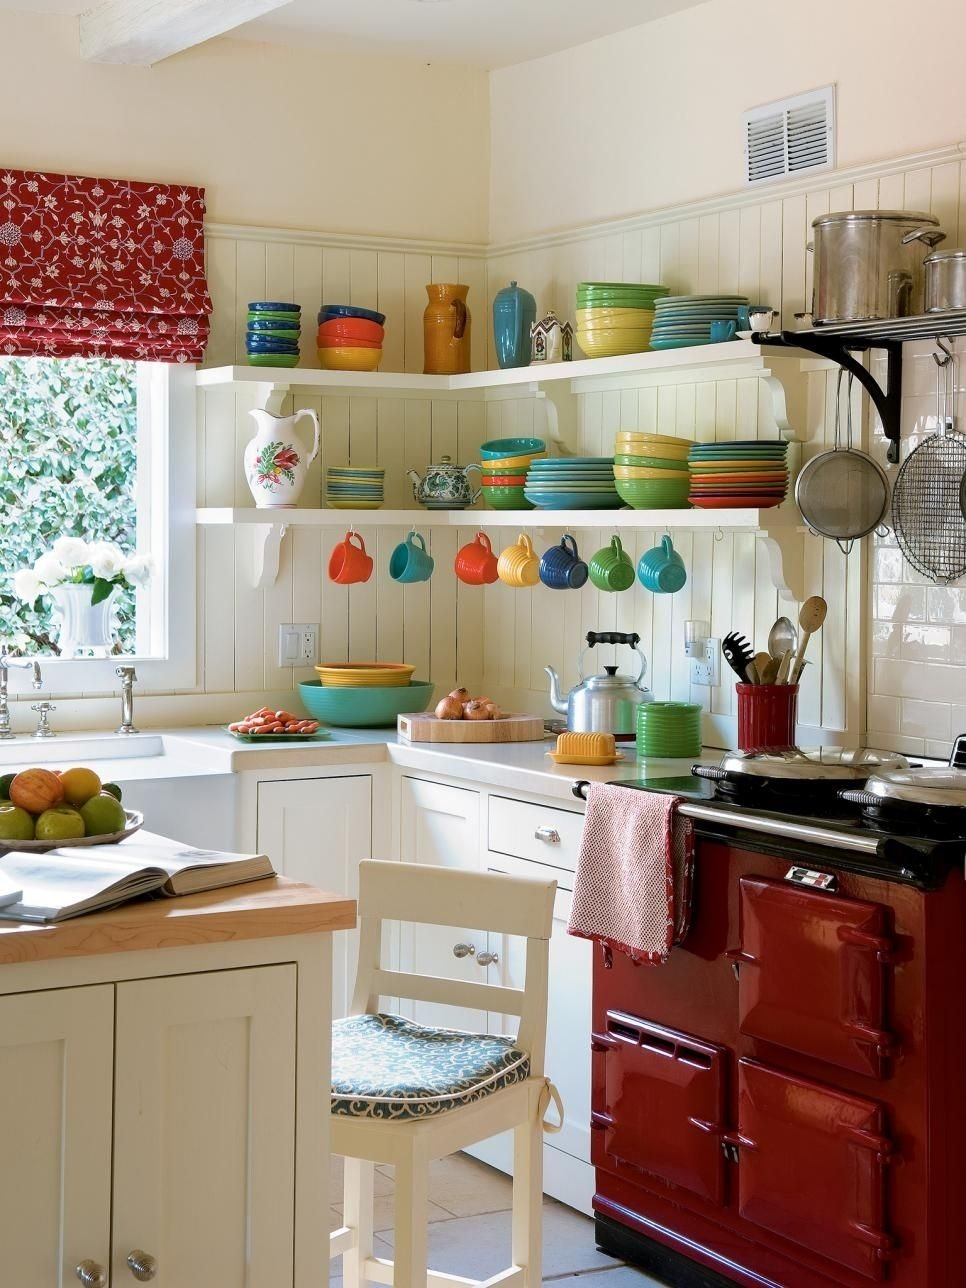 10 Stylish Cabinet Ideas For Small Kitchens pictures of small kitchen design ideas from small kitchen layouts 1